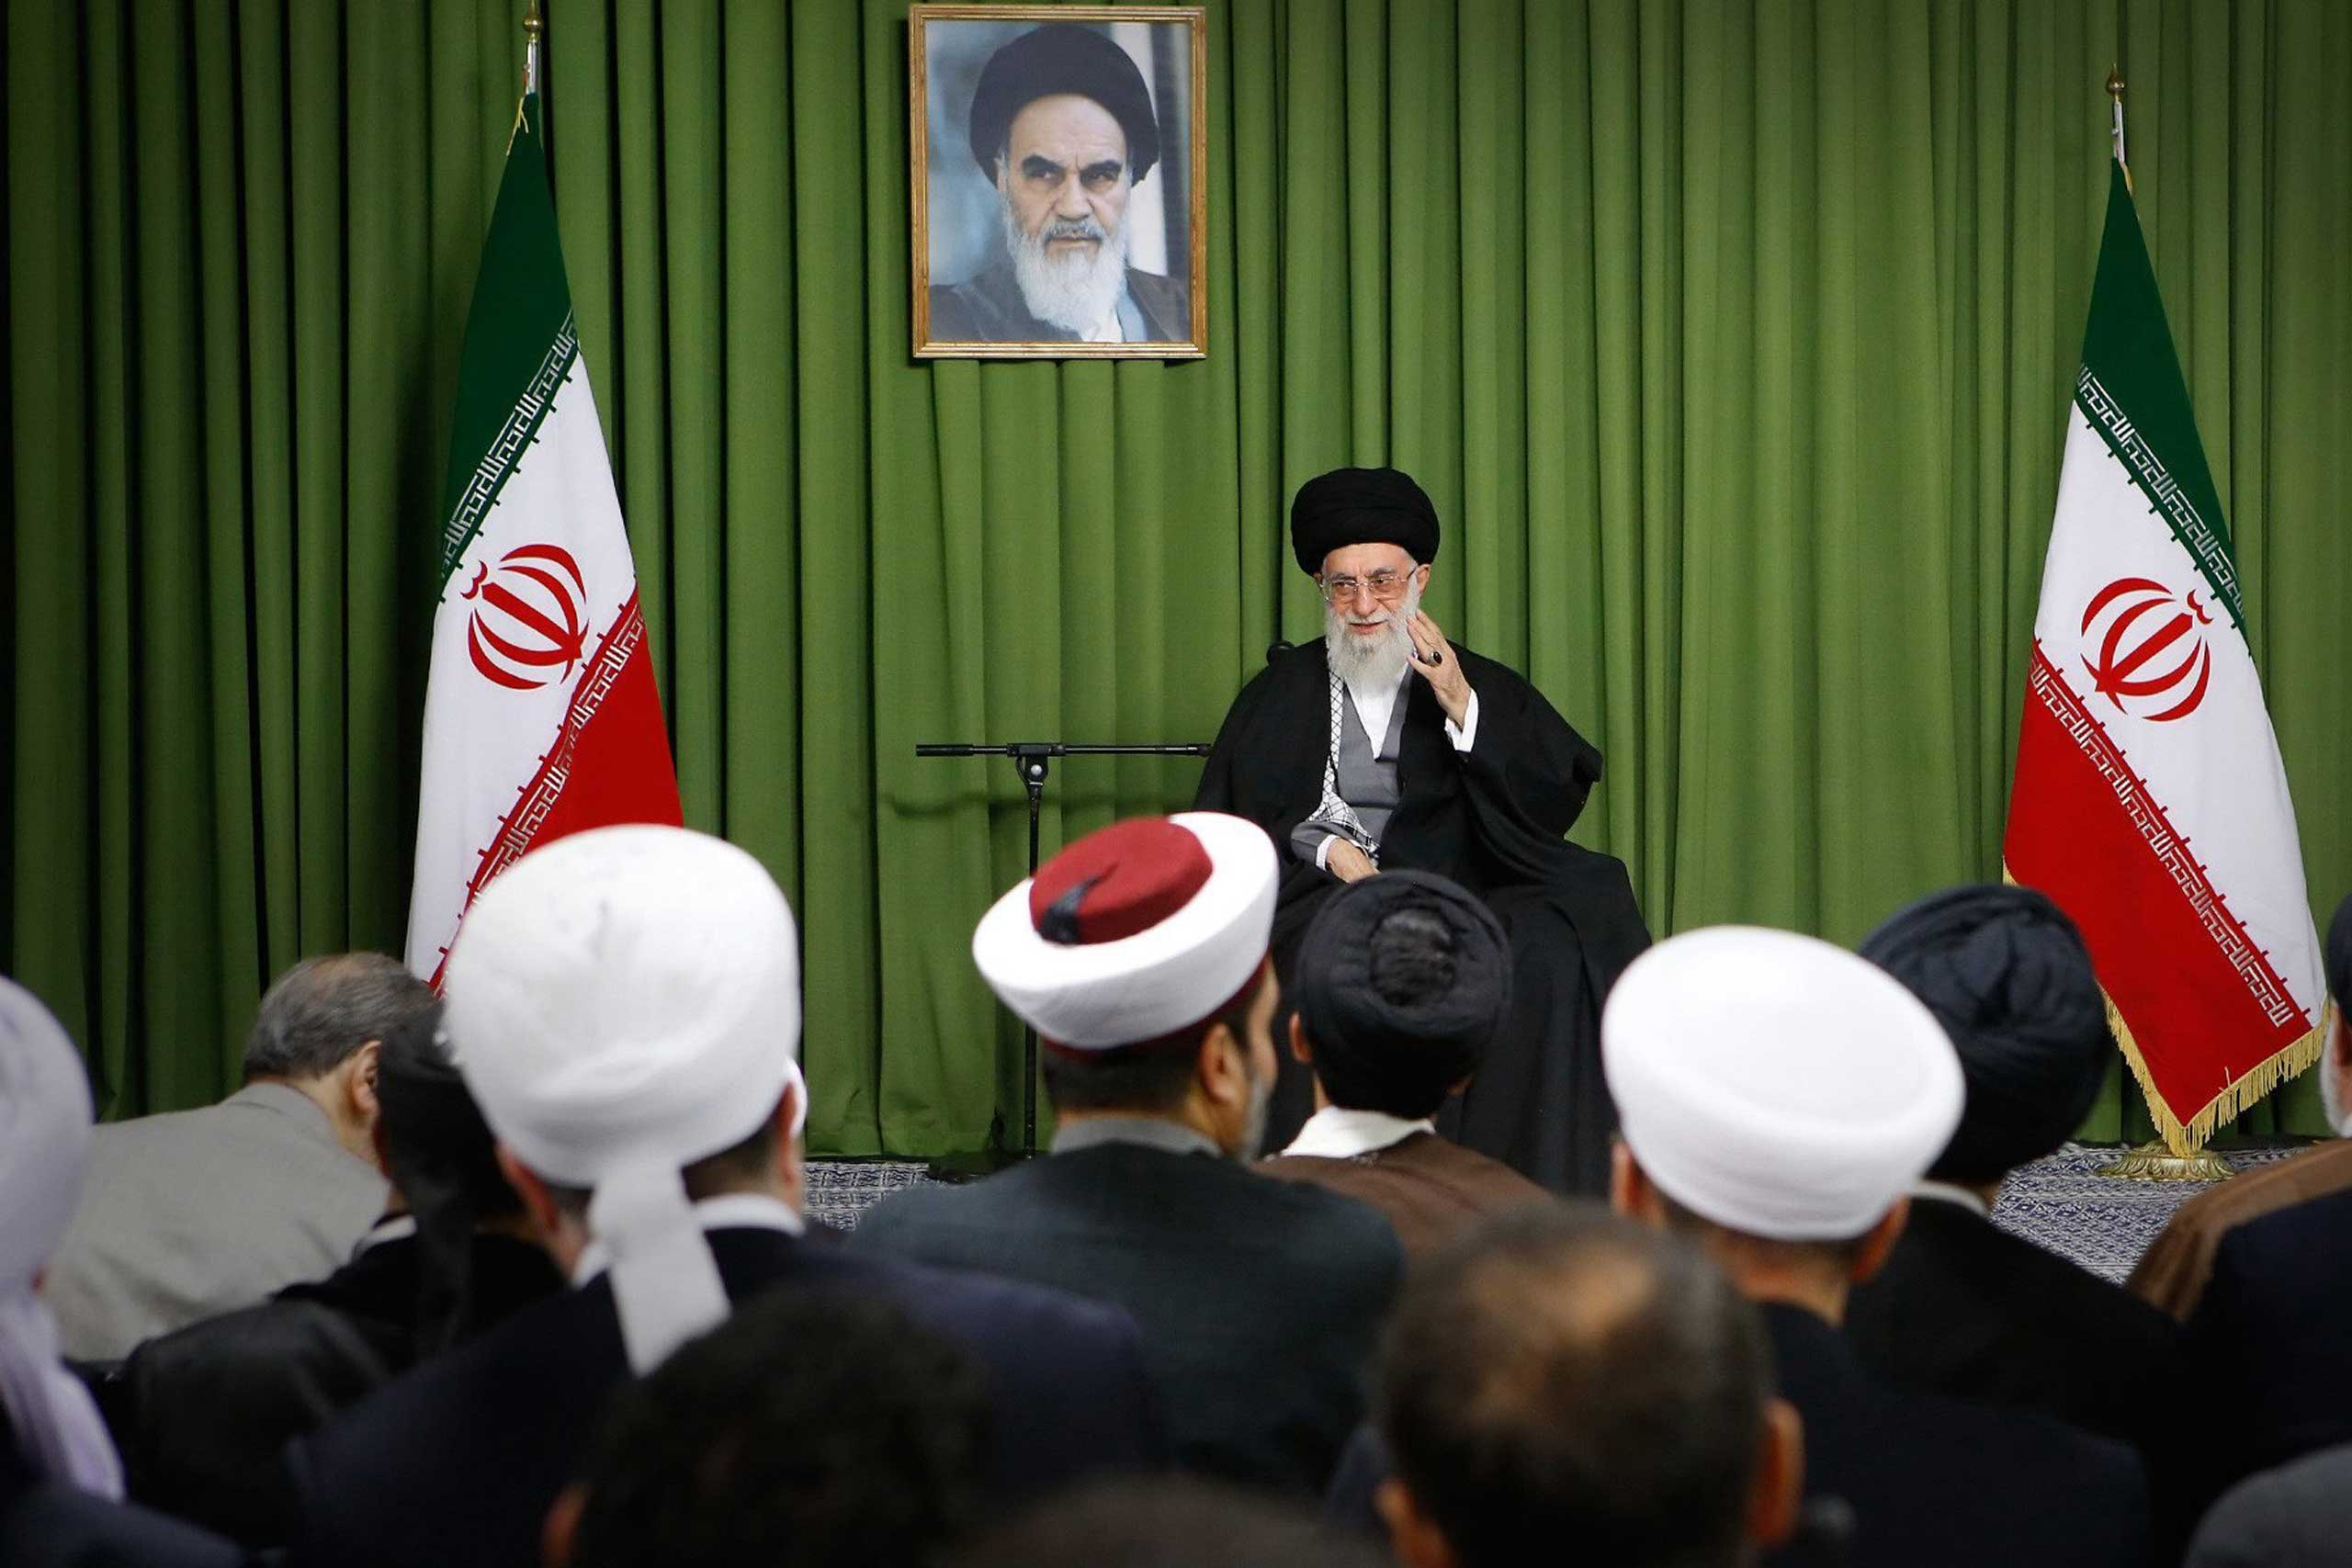 Supreme leader Ayatollah Ali Khamenei speaks during a ceremony in Tehran, Nov. 25, 2014.